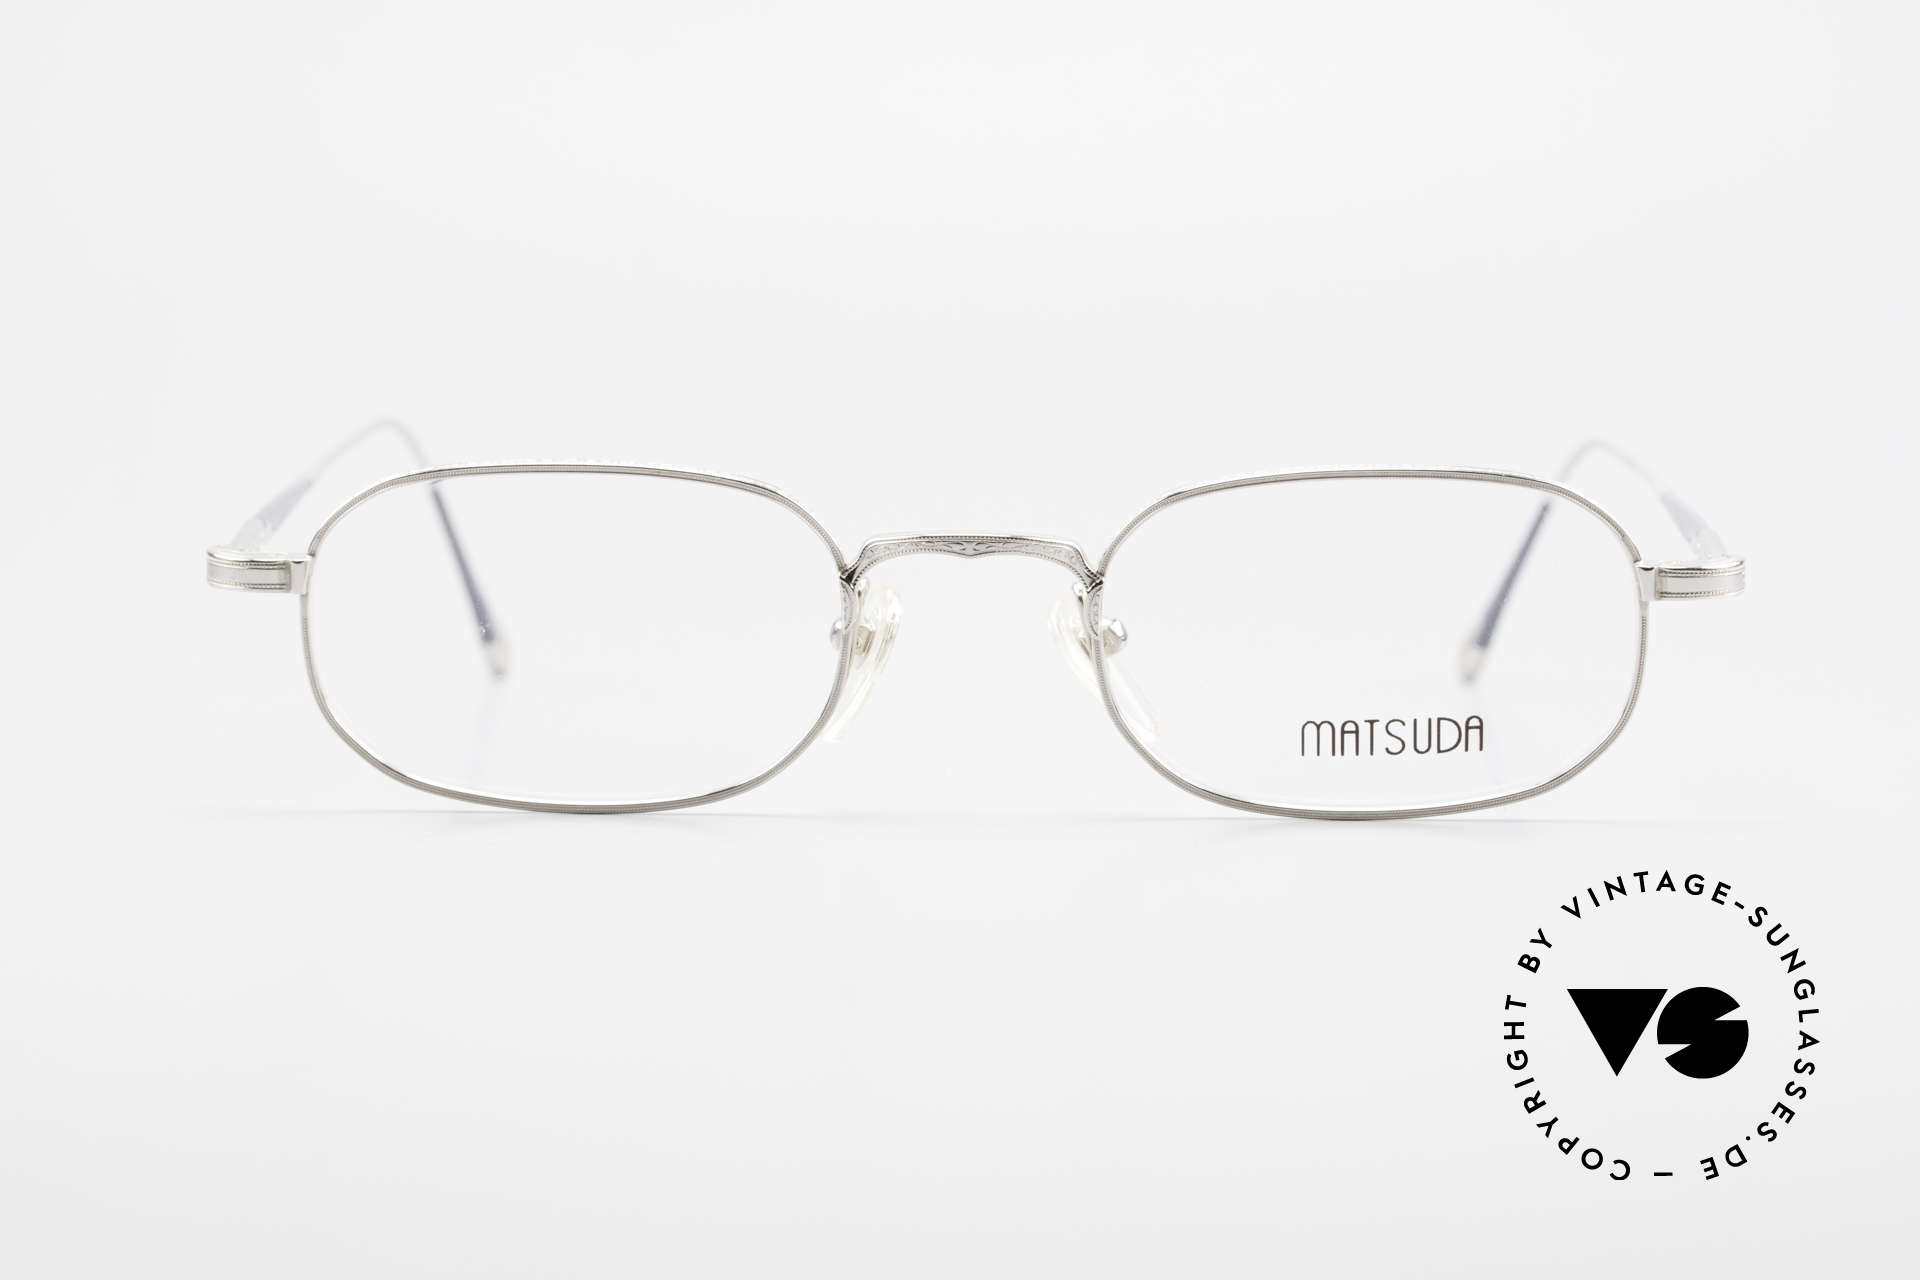 Matsuda 10108 90's Men's Eyeglasses High End, unbelievable craftsmanship, top-notch, made in Japan, Made for Men